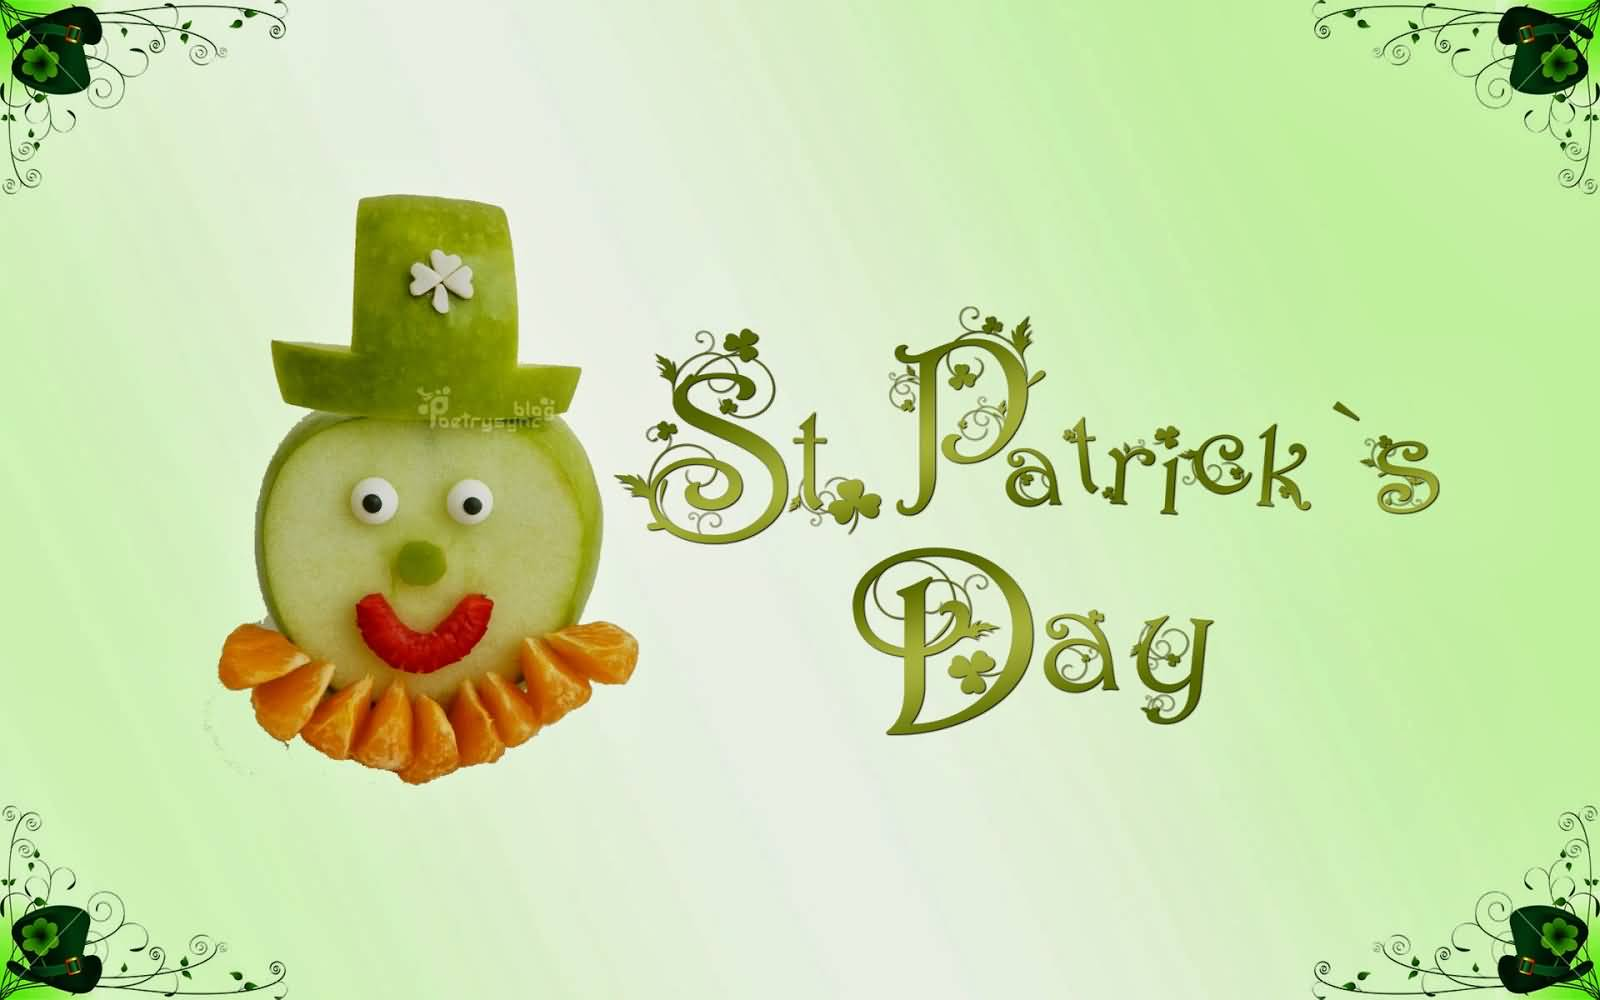 Saint Patricku0027s Day 2017 Greetings. Saint Patricku0027s Day Fruit Face